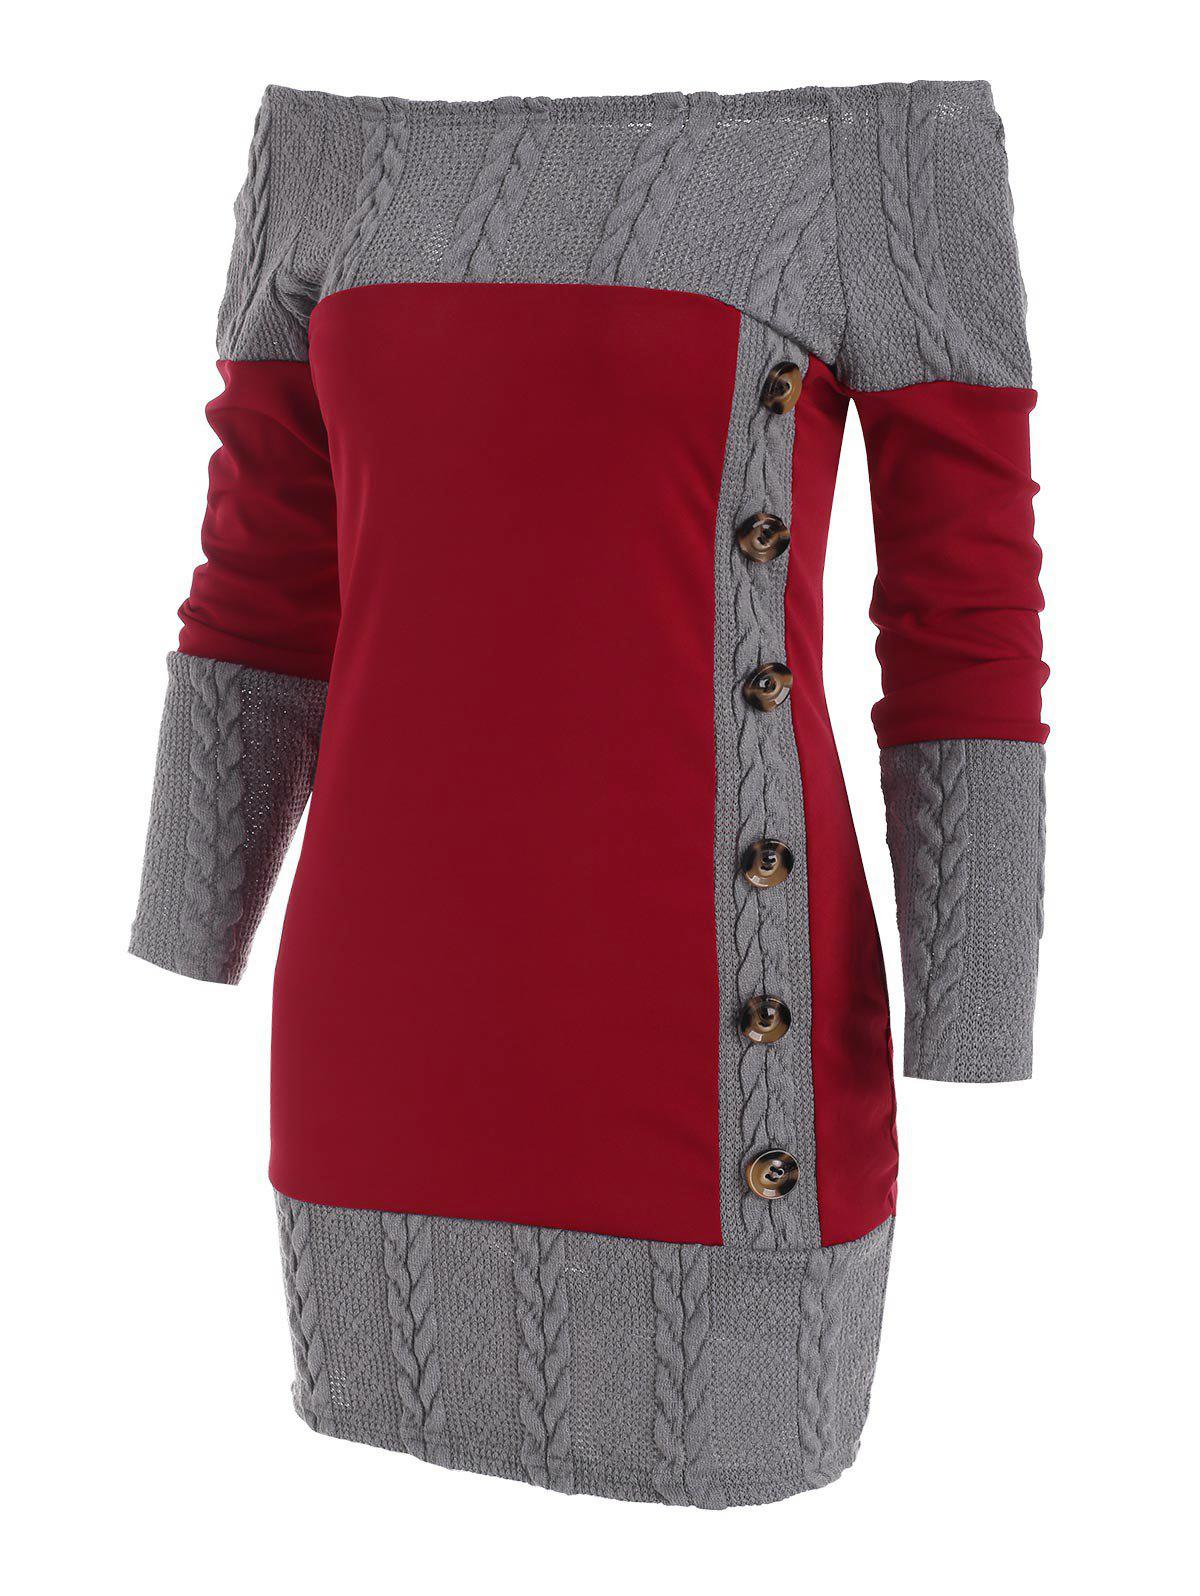 Combo Mock Button Cable Knit Sweater Dress - DEEP RED 3XL